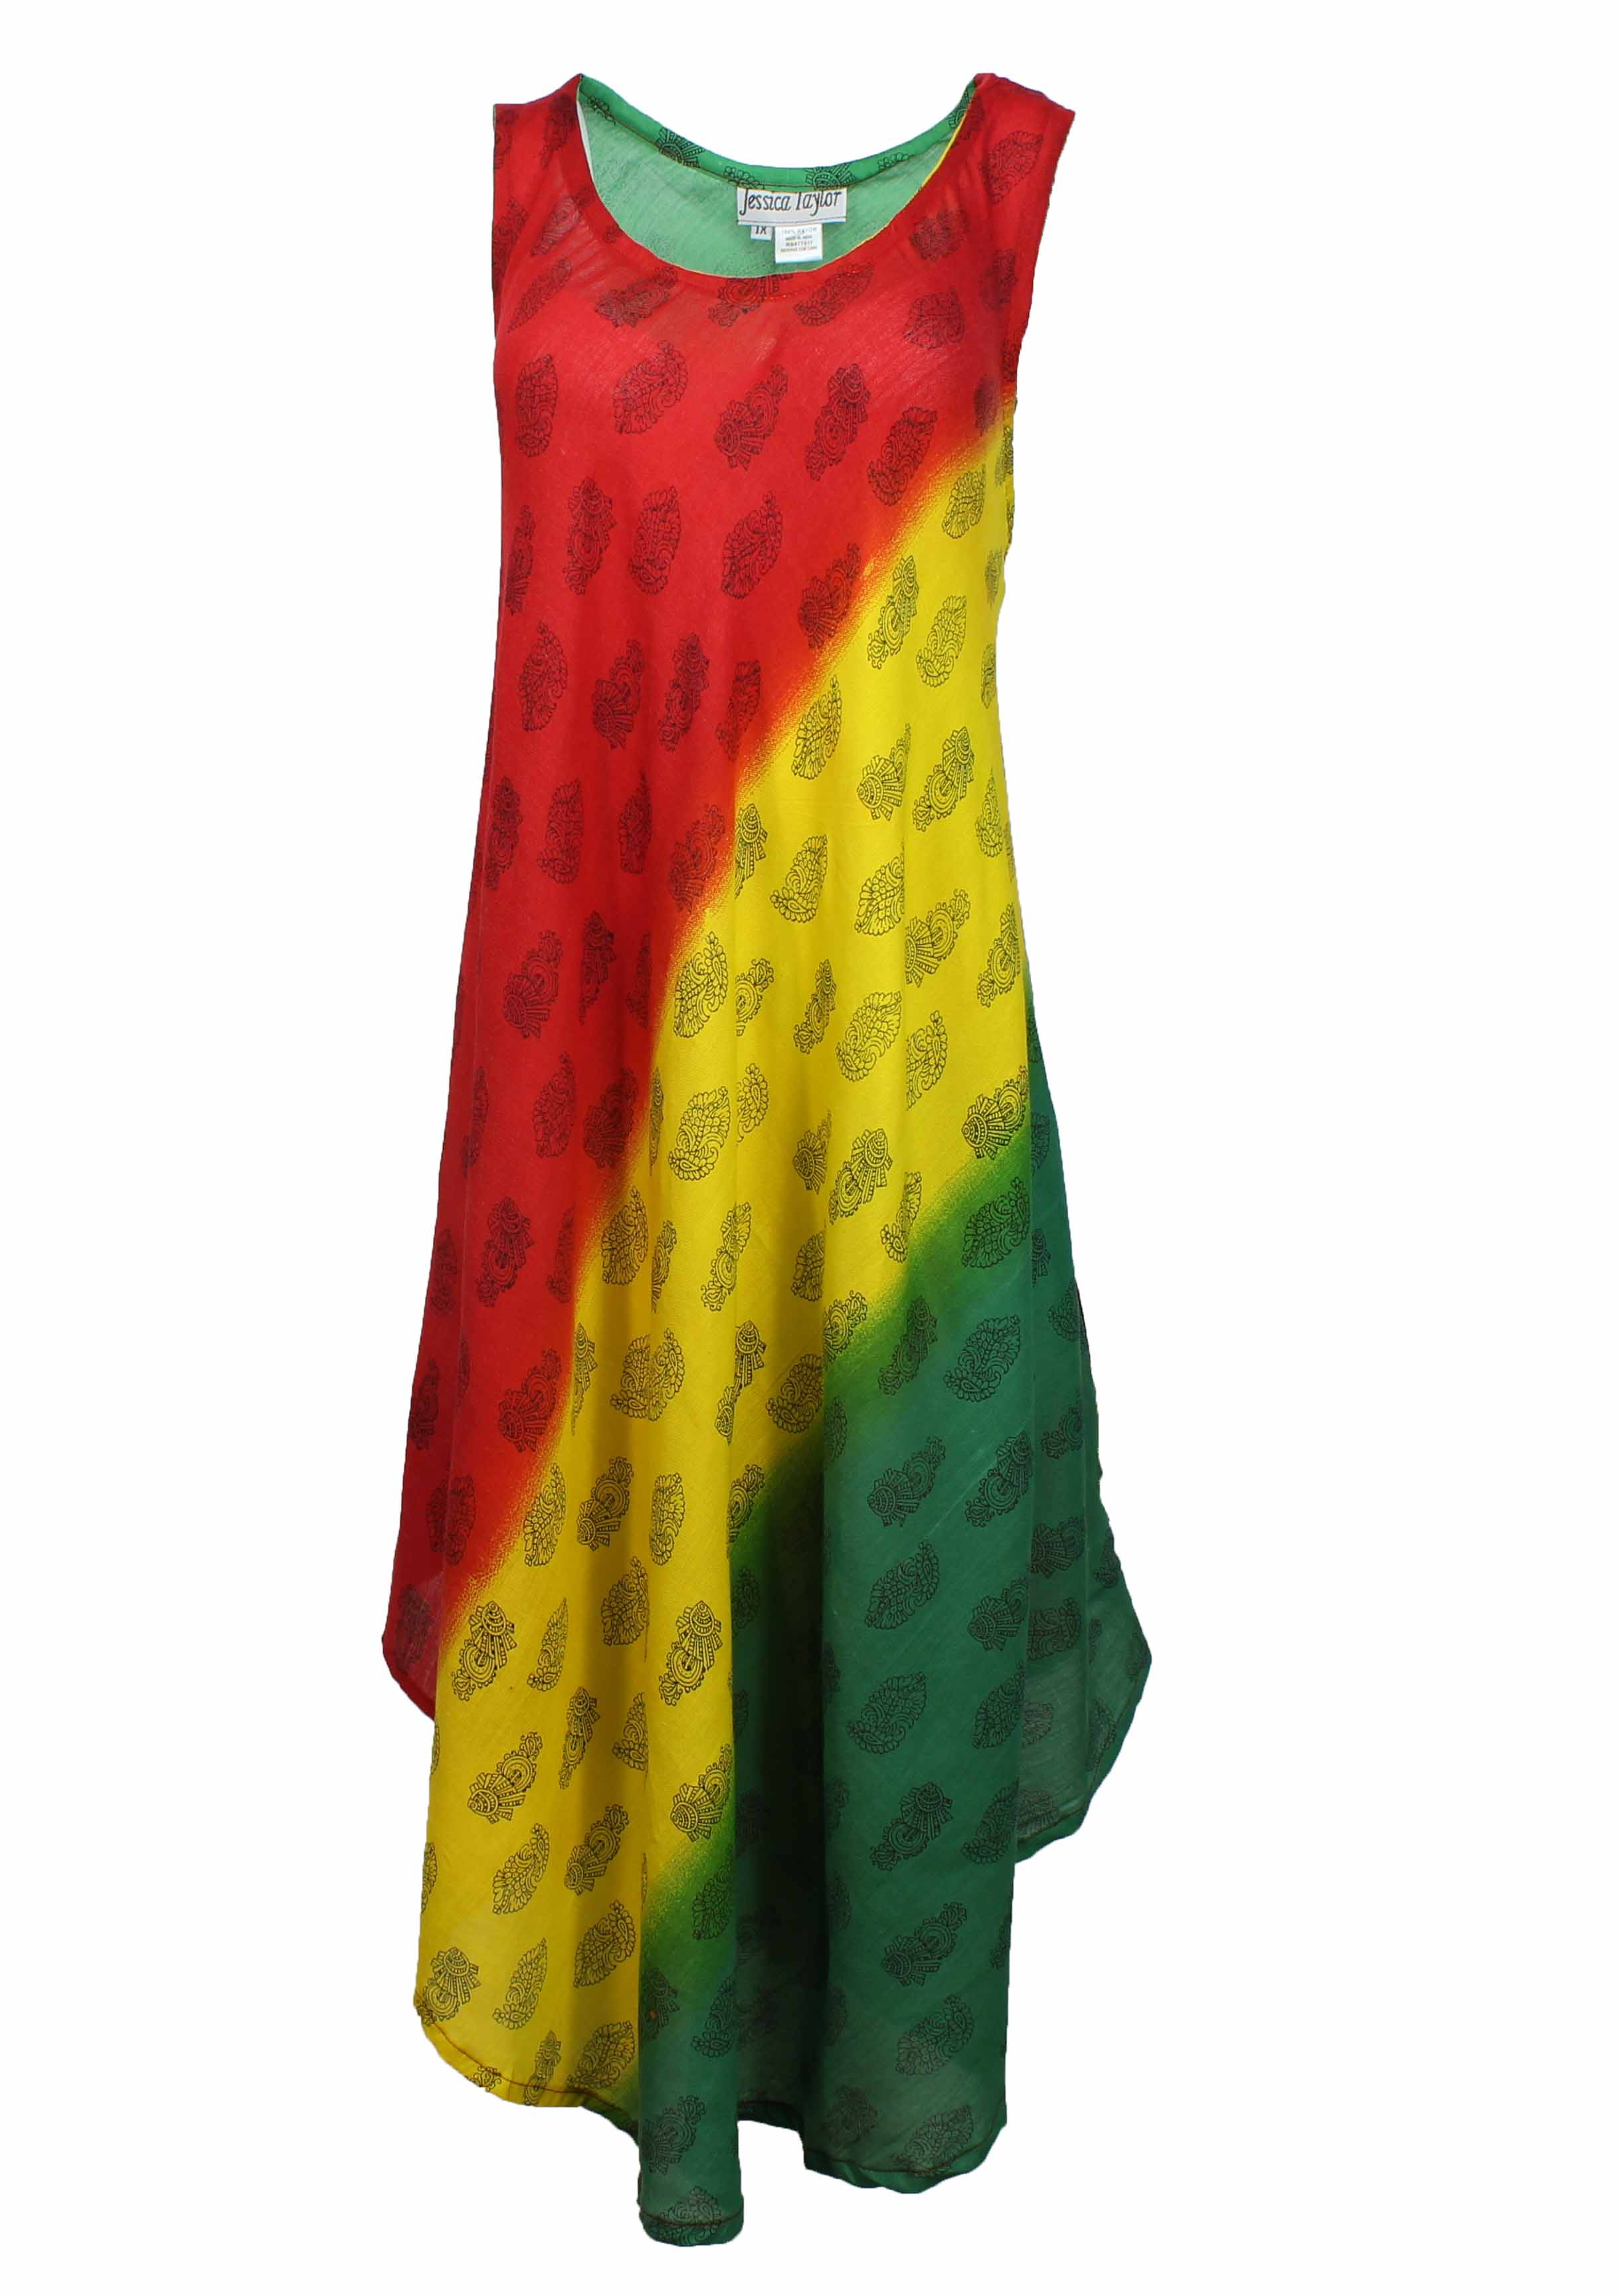 Details about Jessica Taylor Womens Plus Sized Sleeveless Rasta Dress, 100%  Rayon